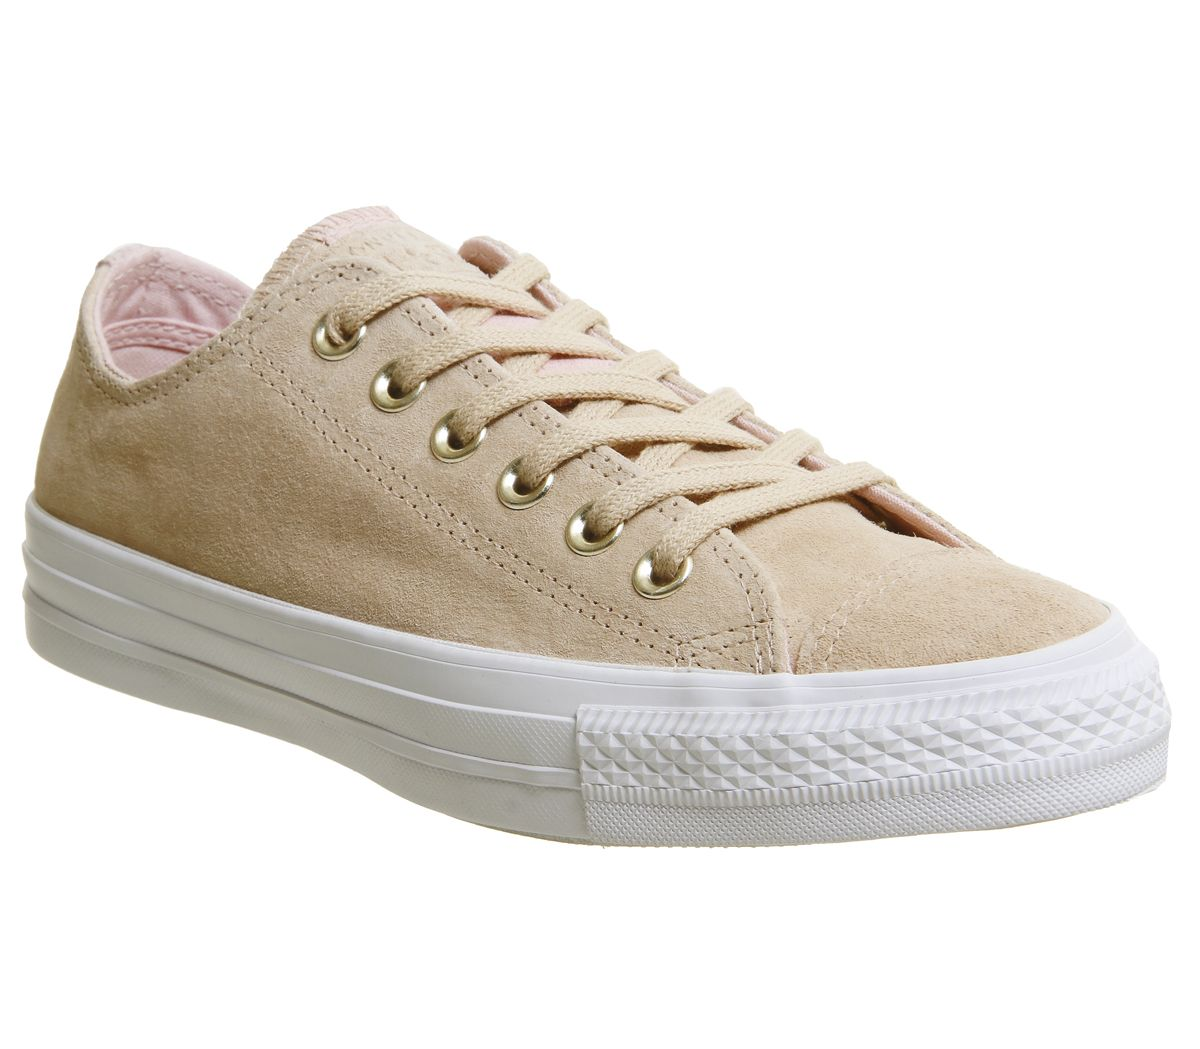 ba846b483c0ae5 Sentinel Womens Converse Cream Suede Lace Up Trainers Size UK 3  Ex-Display